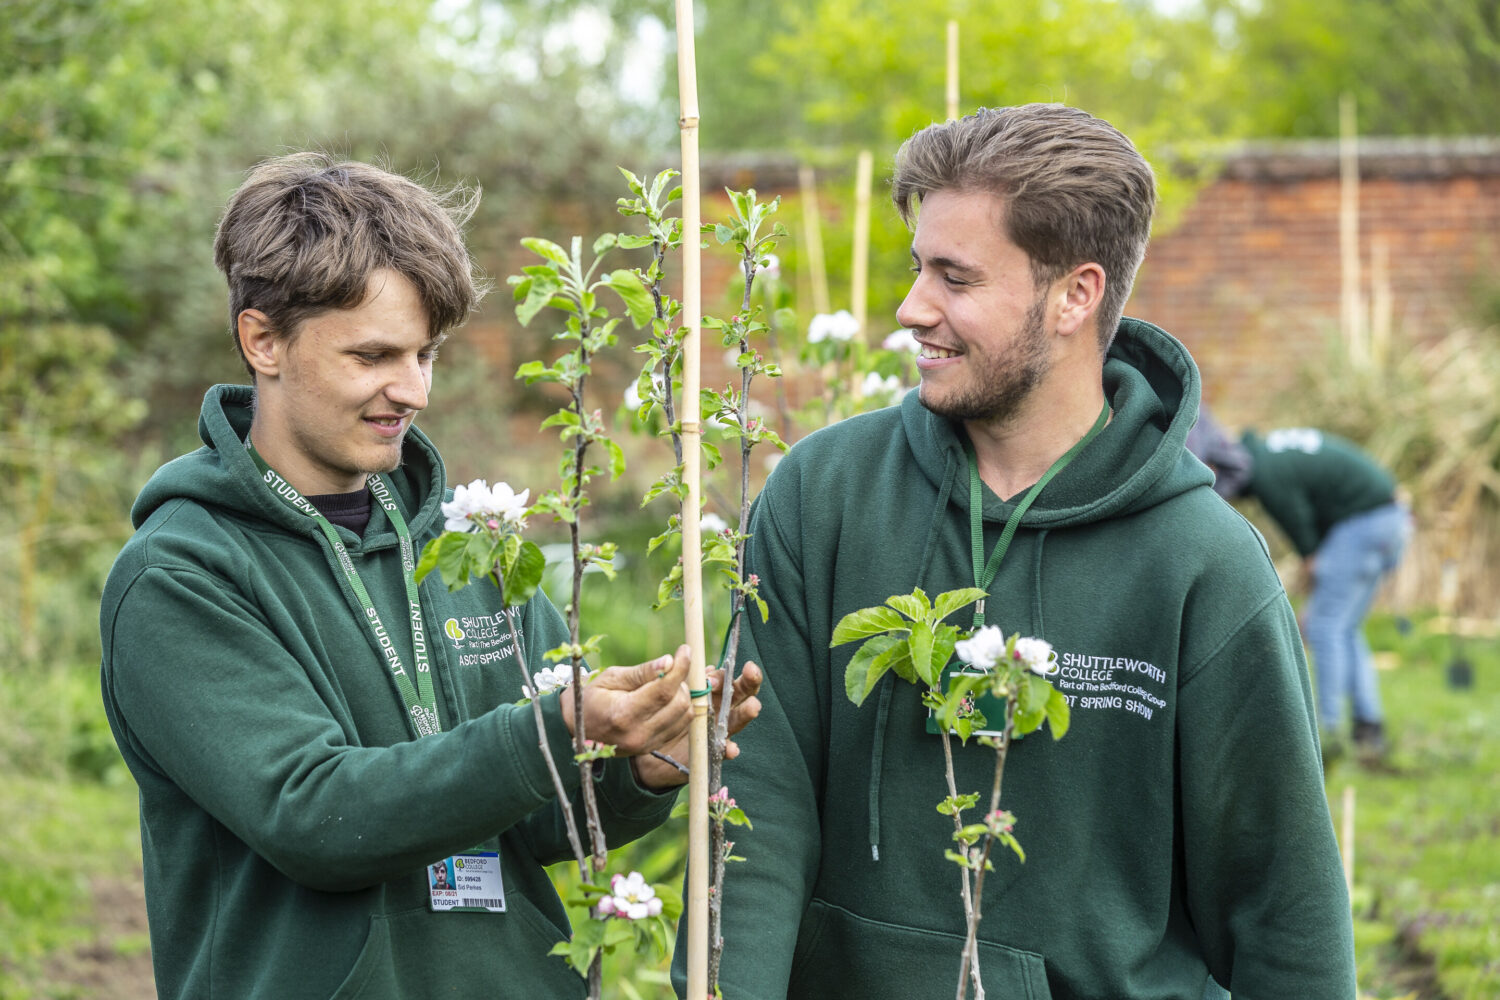 Shuttleworth College Horticulture Students